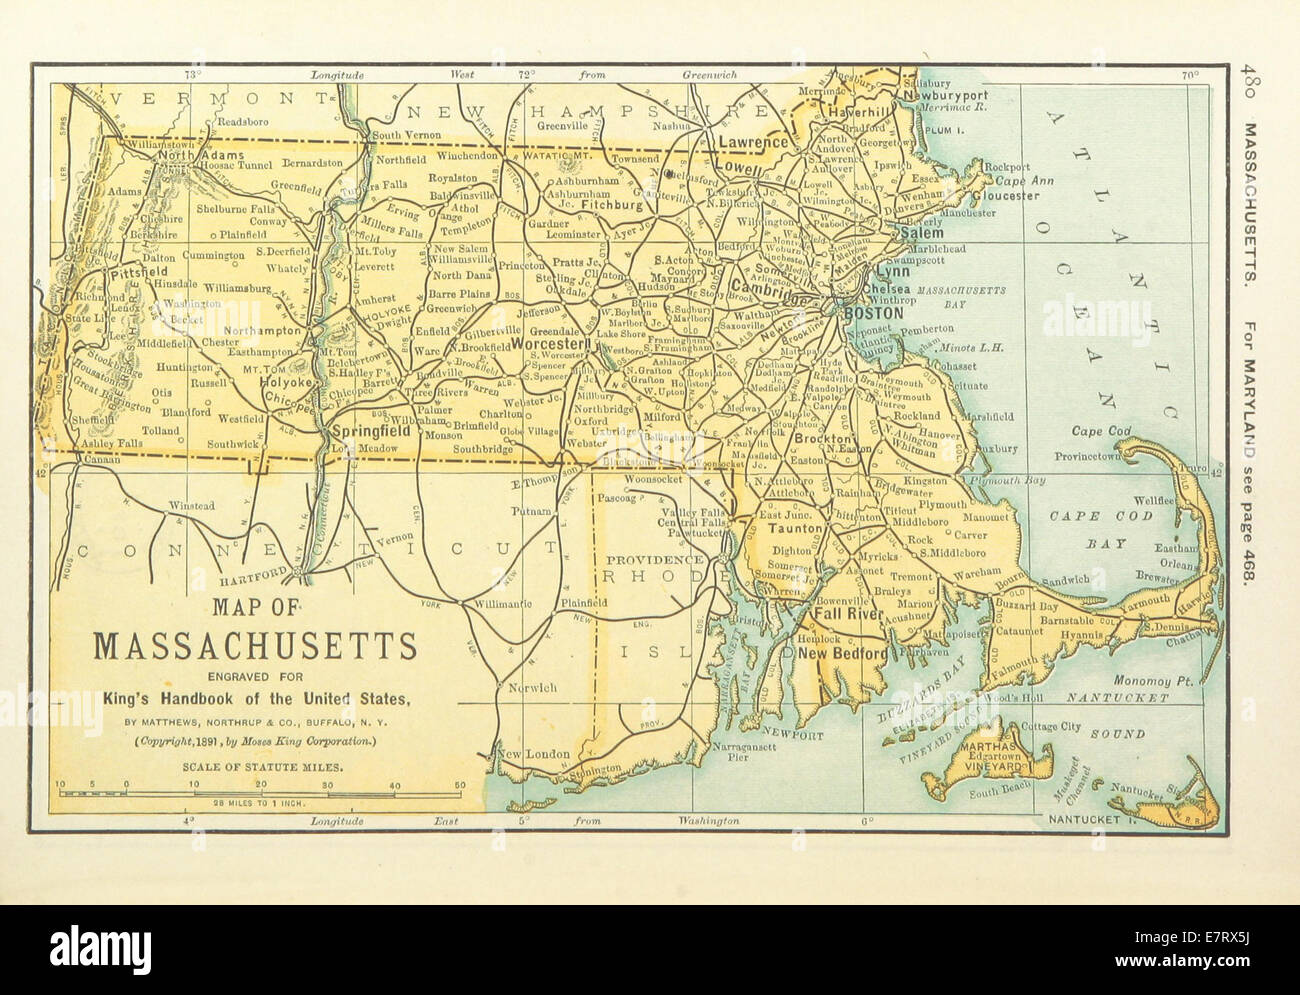 USMAPS P MAP OF MASSACHUSETTS Stock Photo Royalty - Us map massachusetts